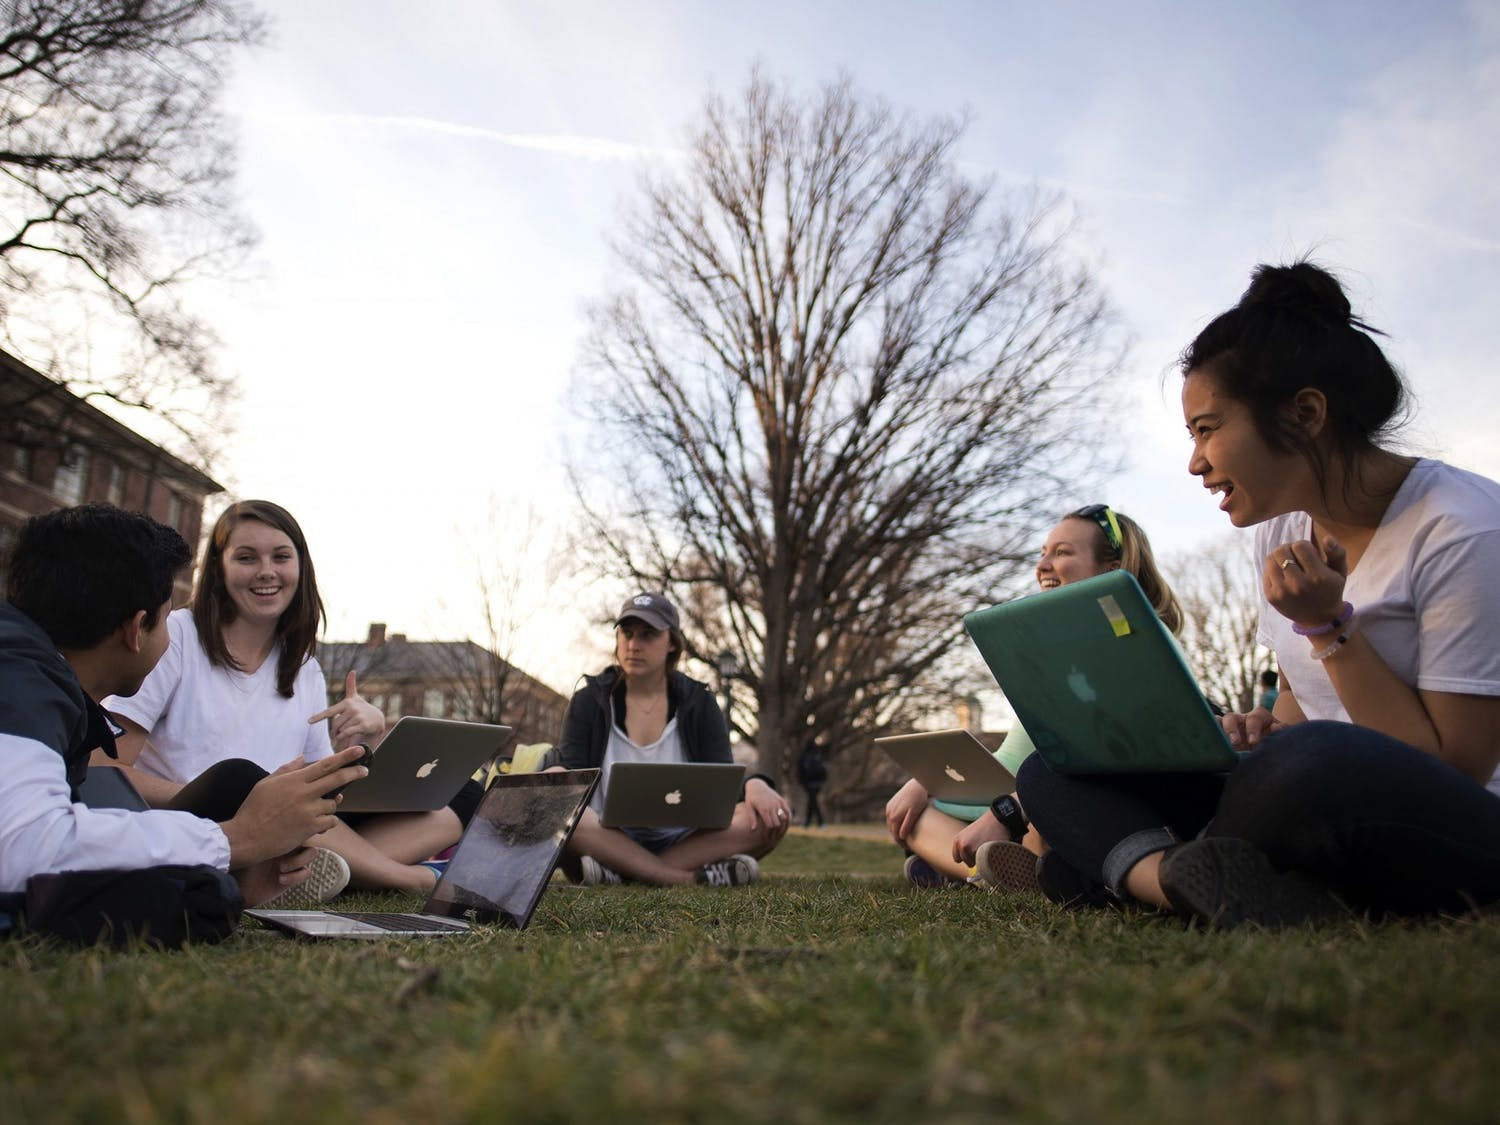 Students gather outside during a warm March afternoon on the lawns of Polk Place on the campus of the University of North Carolina at Chapel Hill.  March 8, 2016.  (Photo by Jon Gardiner/UNC-Chapel Hill)